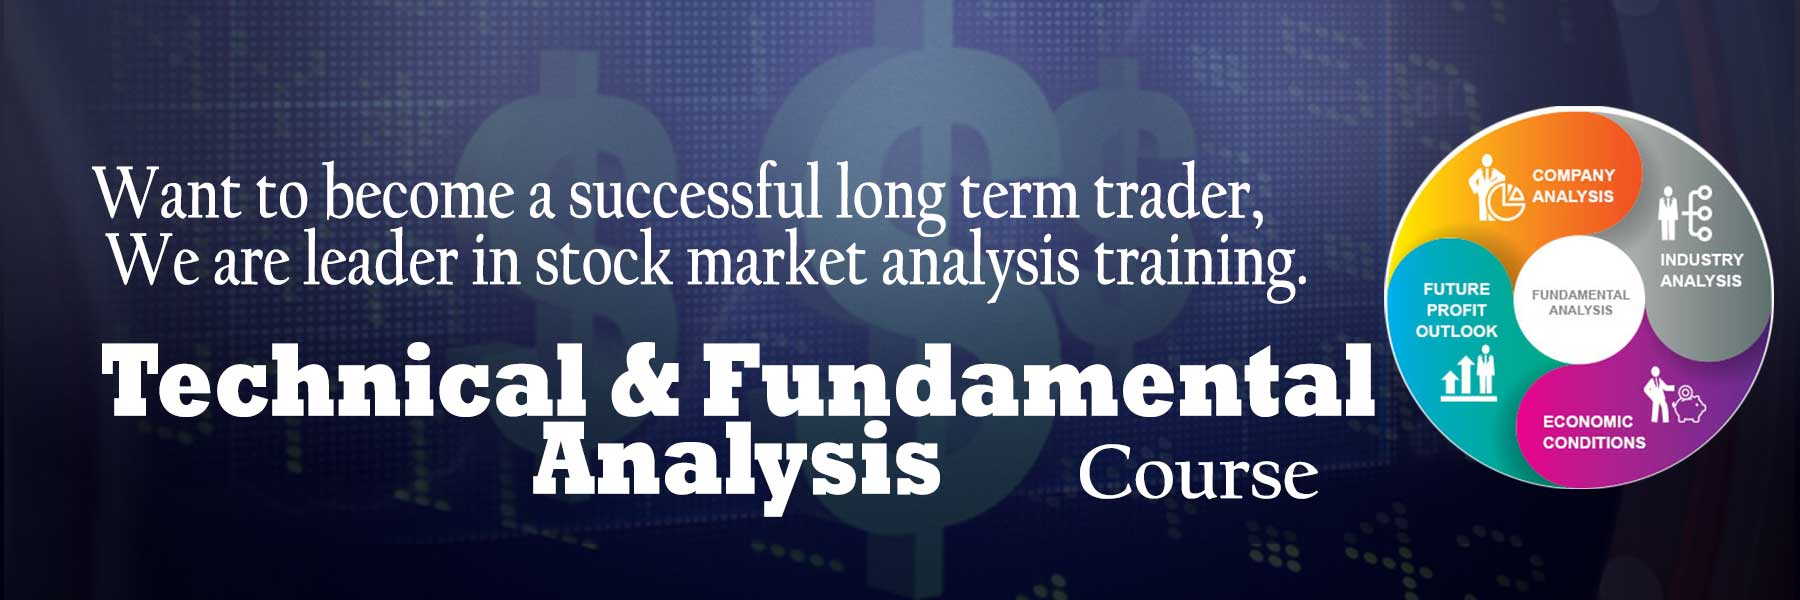 Best Stock Market Institutes In Hyderabad - Stock Market Courses